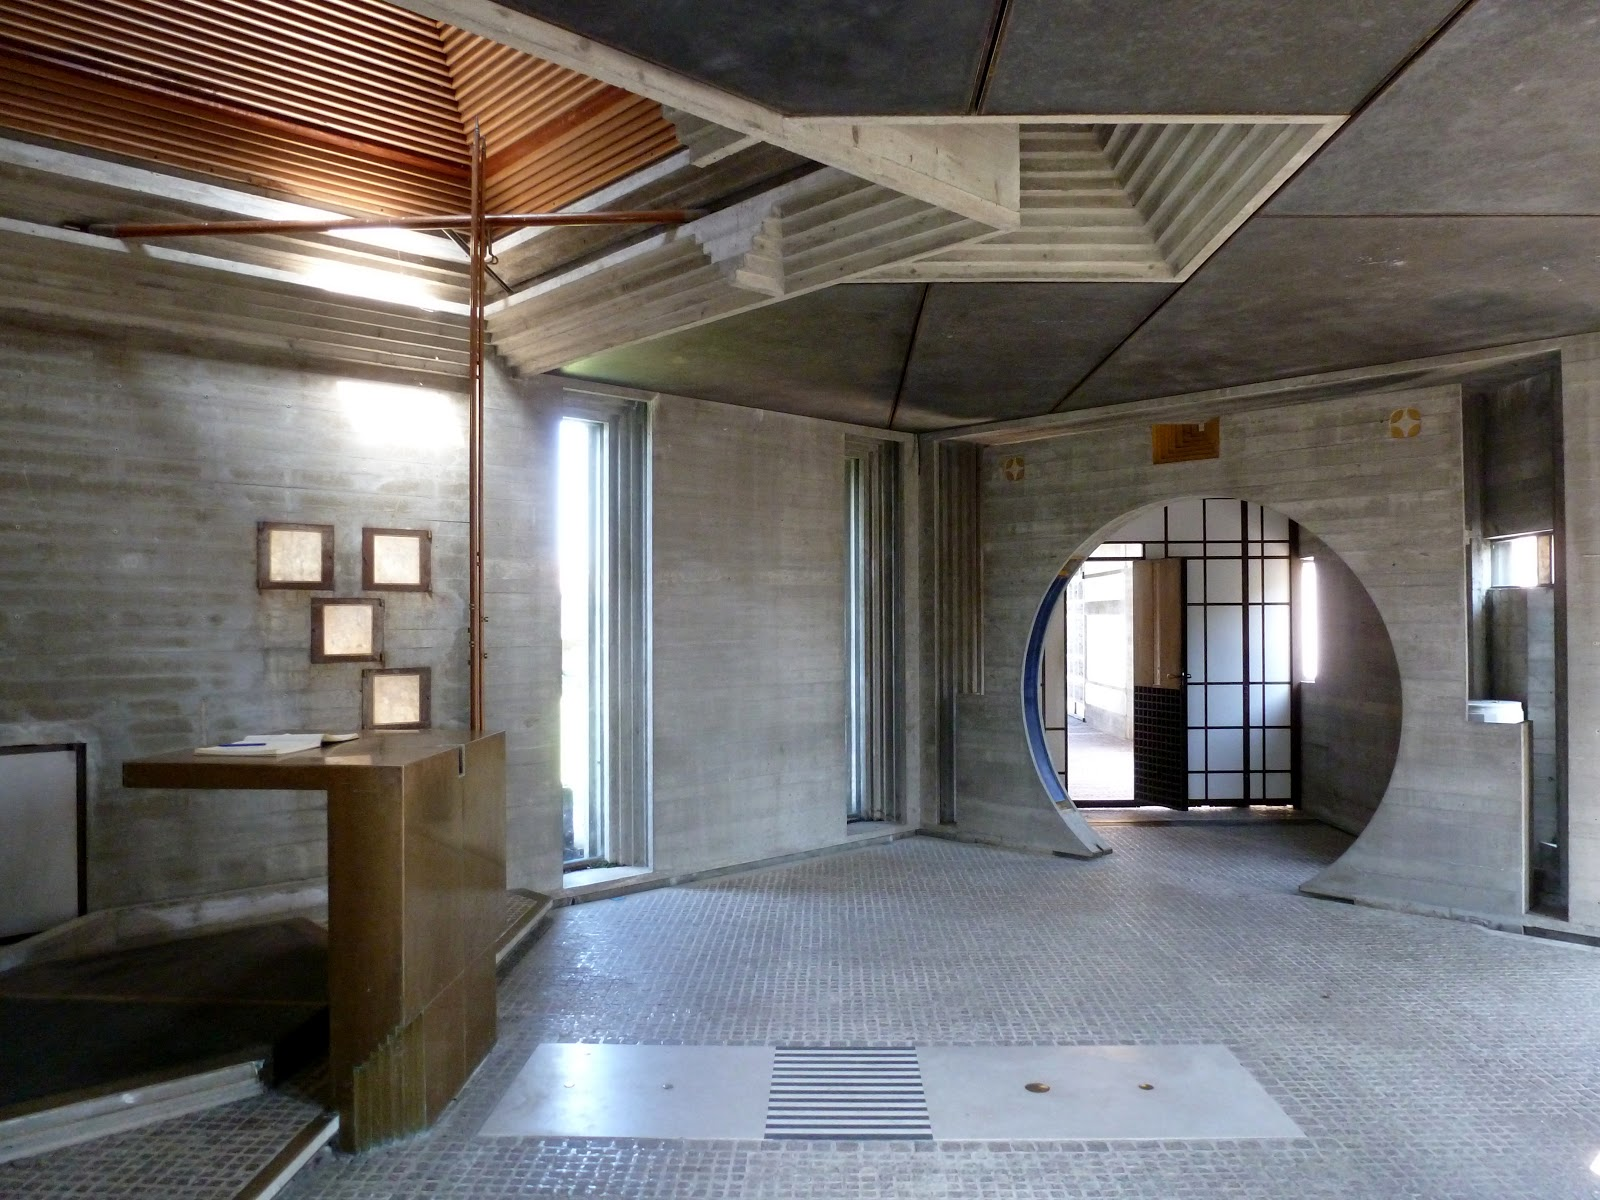 Urban architecture now getting to carlo scarpa 39 s brion vega - Carlo scarpa architecture and design ...